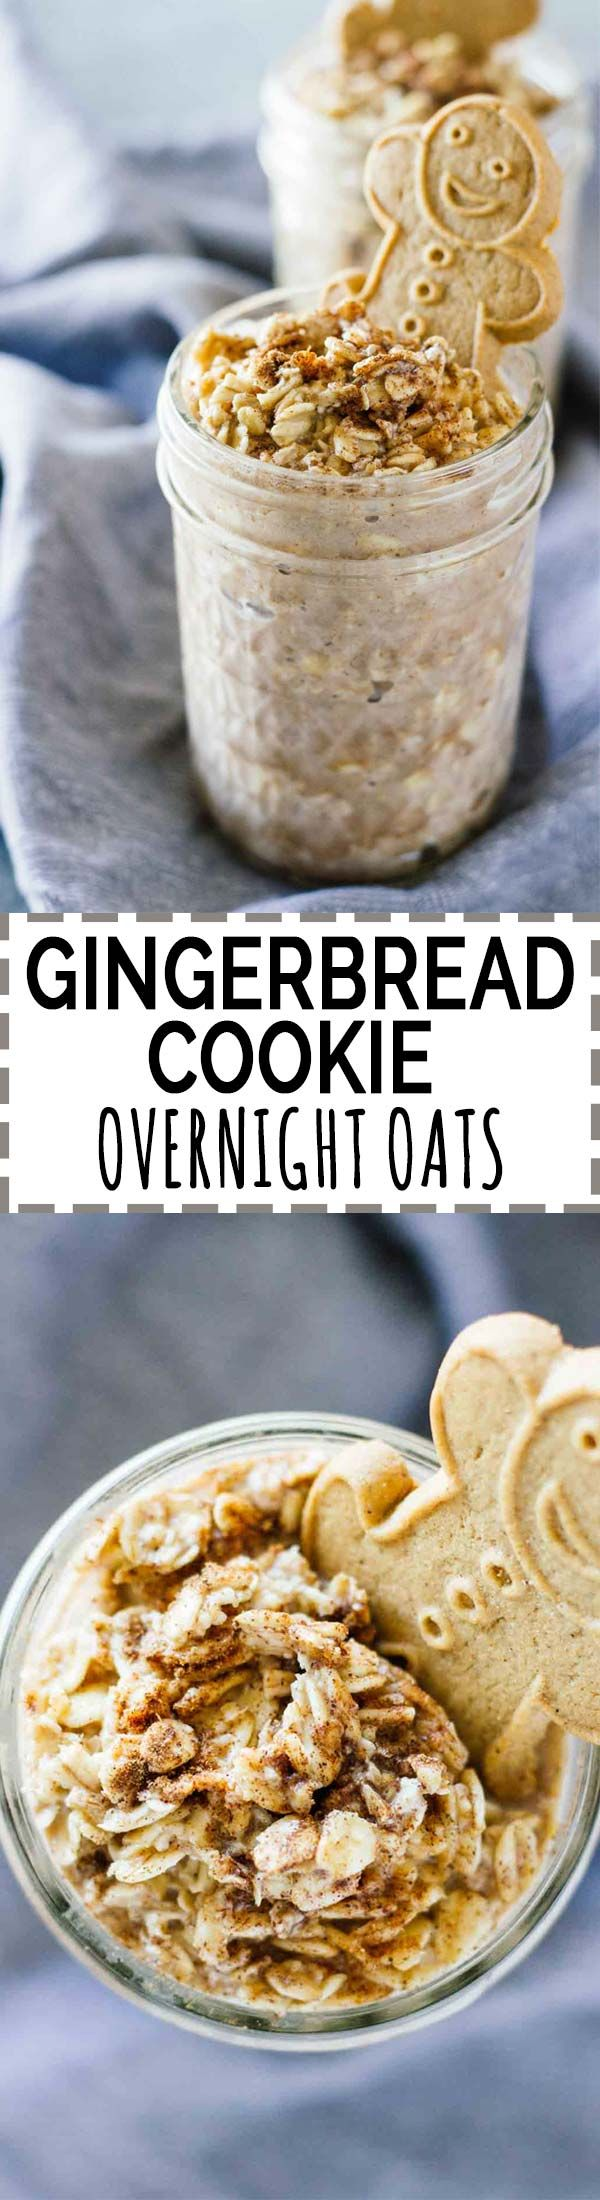 Gingerbread Cookie Overnight Oats! Vegan, vegetarian, gluten-free, and refined sugar free. Healthy and perfect to take on-the-go this holiday season!